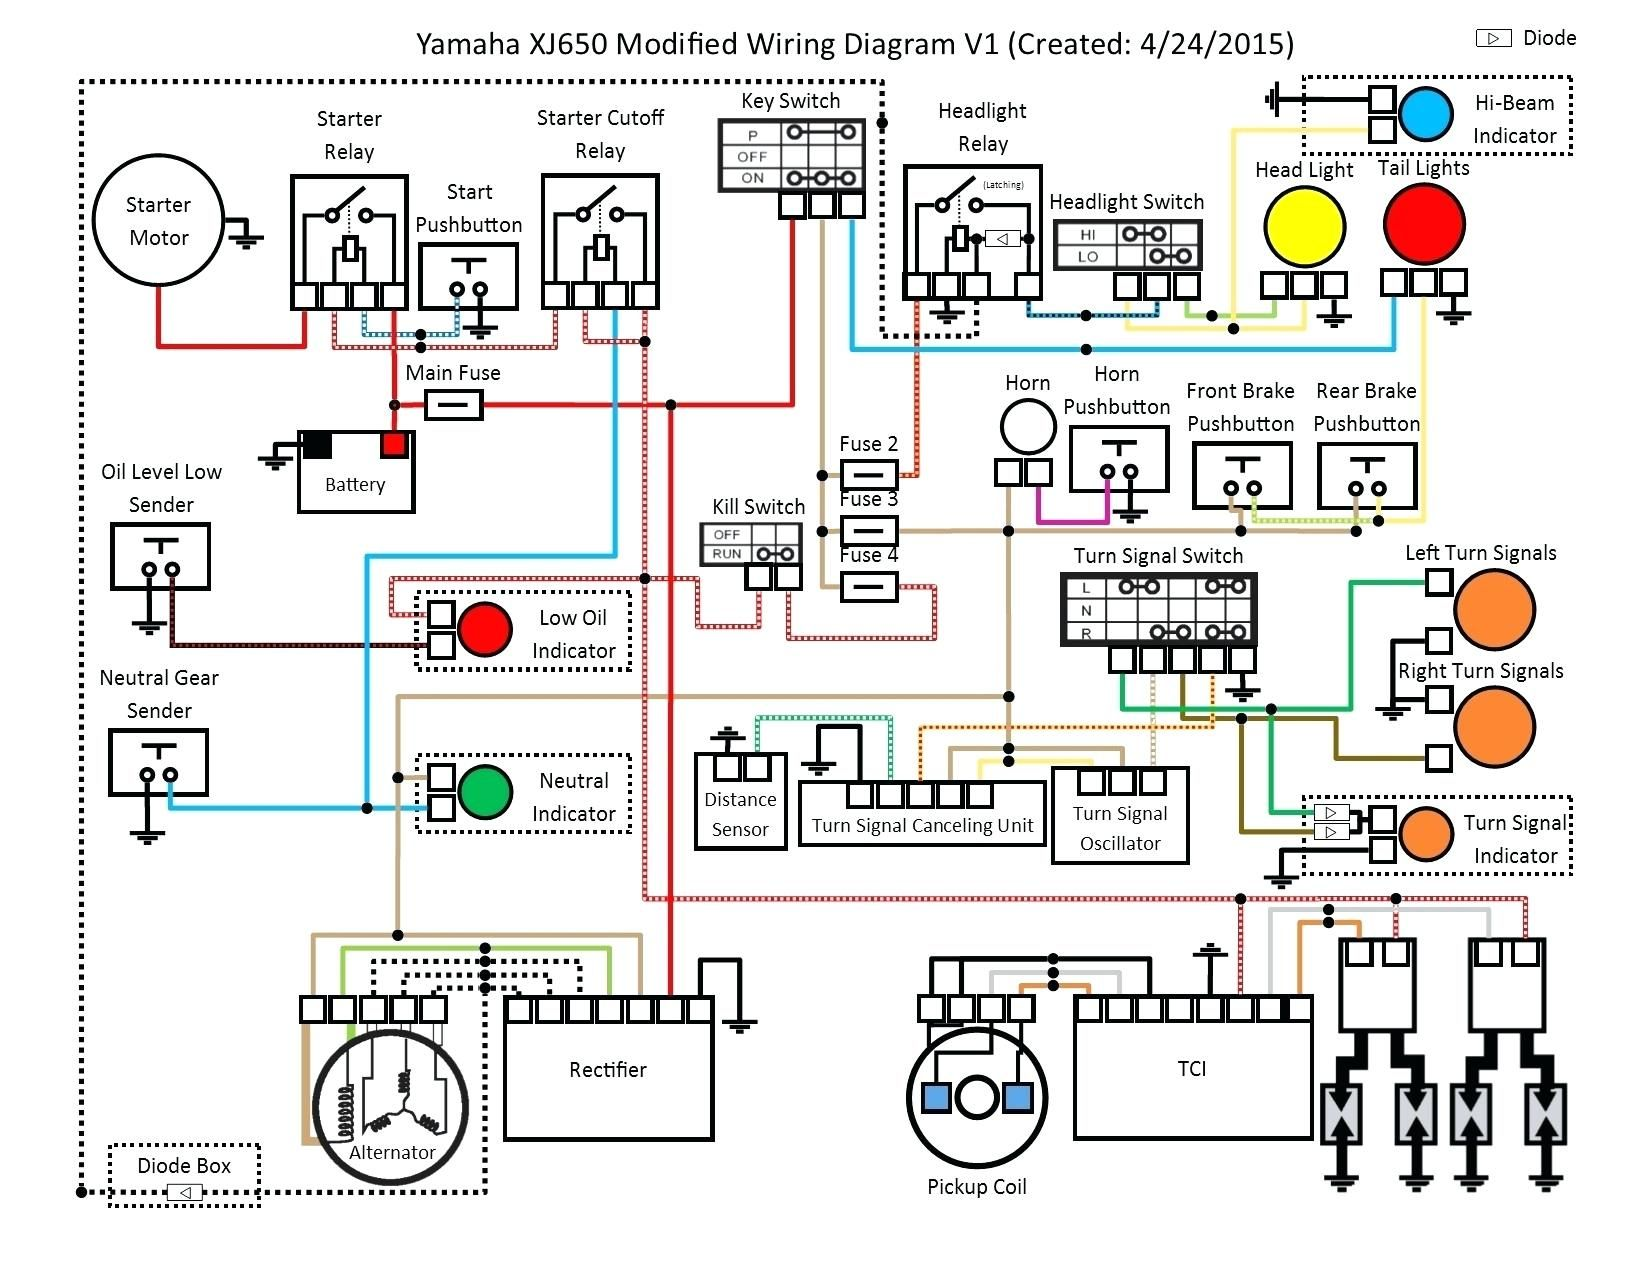 Honda Xrm 125 Electrical Wiring Diagram Lukaszmira Com At